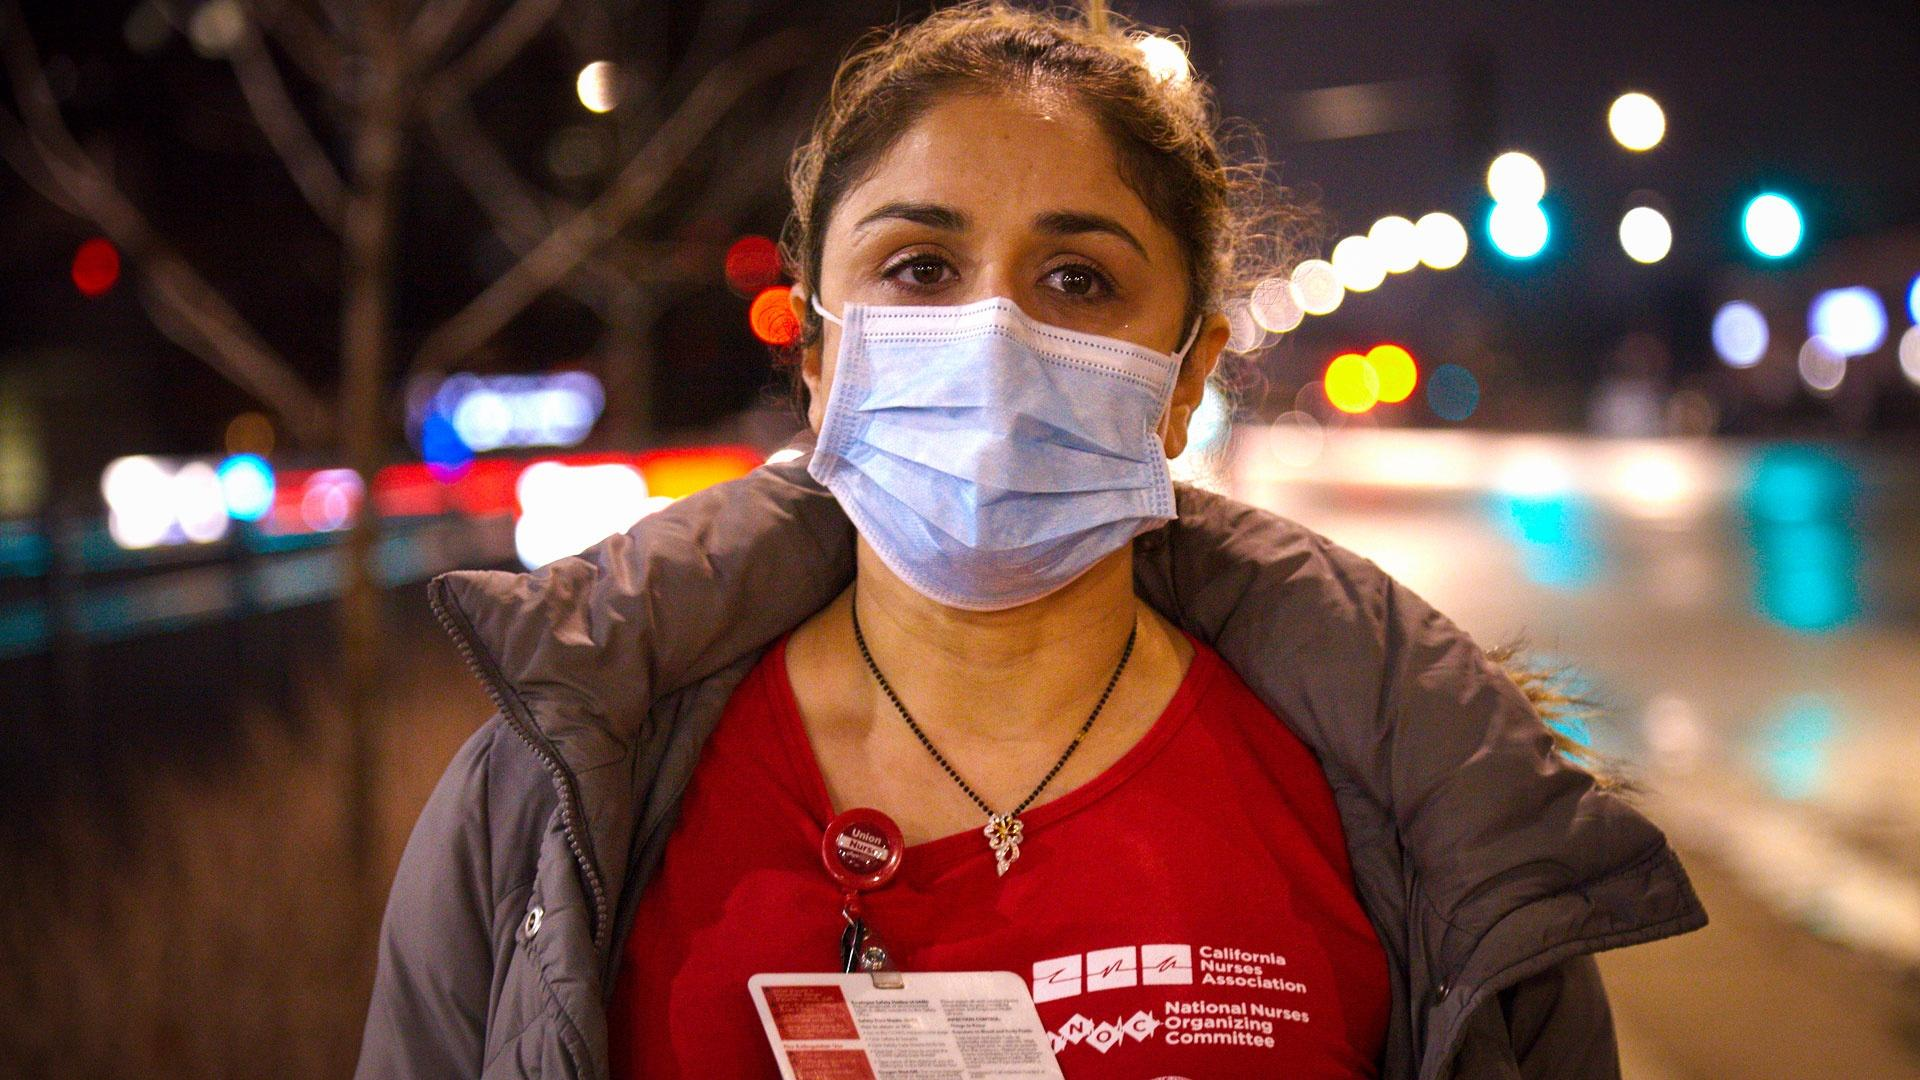 Nurse Falguni Dave on street at night with protective mask on